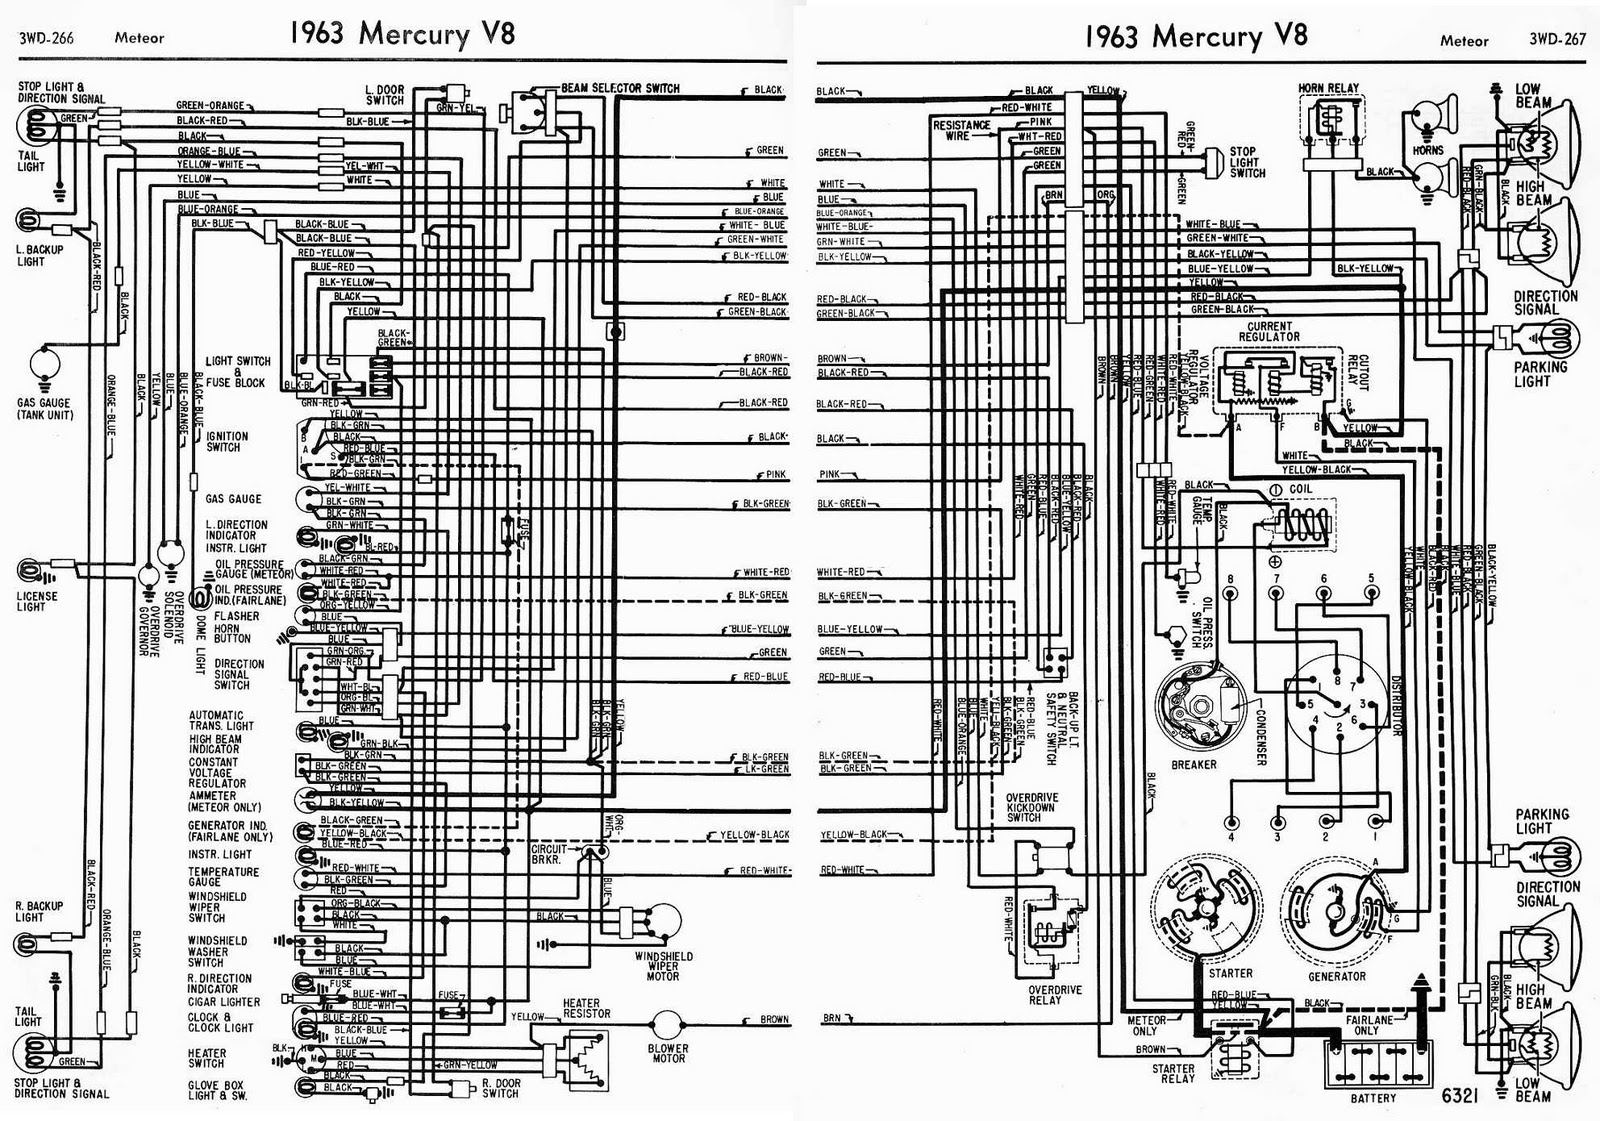 proa 1963 mercury v8 meteor complete wiring diagram 1966 mercury wire diagram 1966 mercury outboard wiring diagram